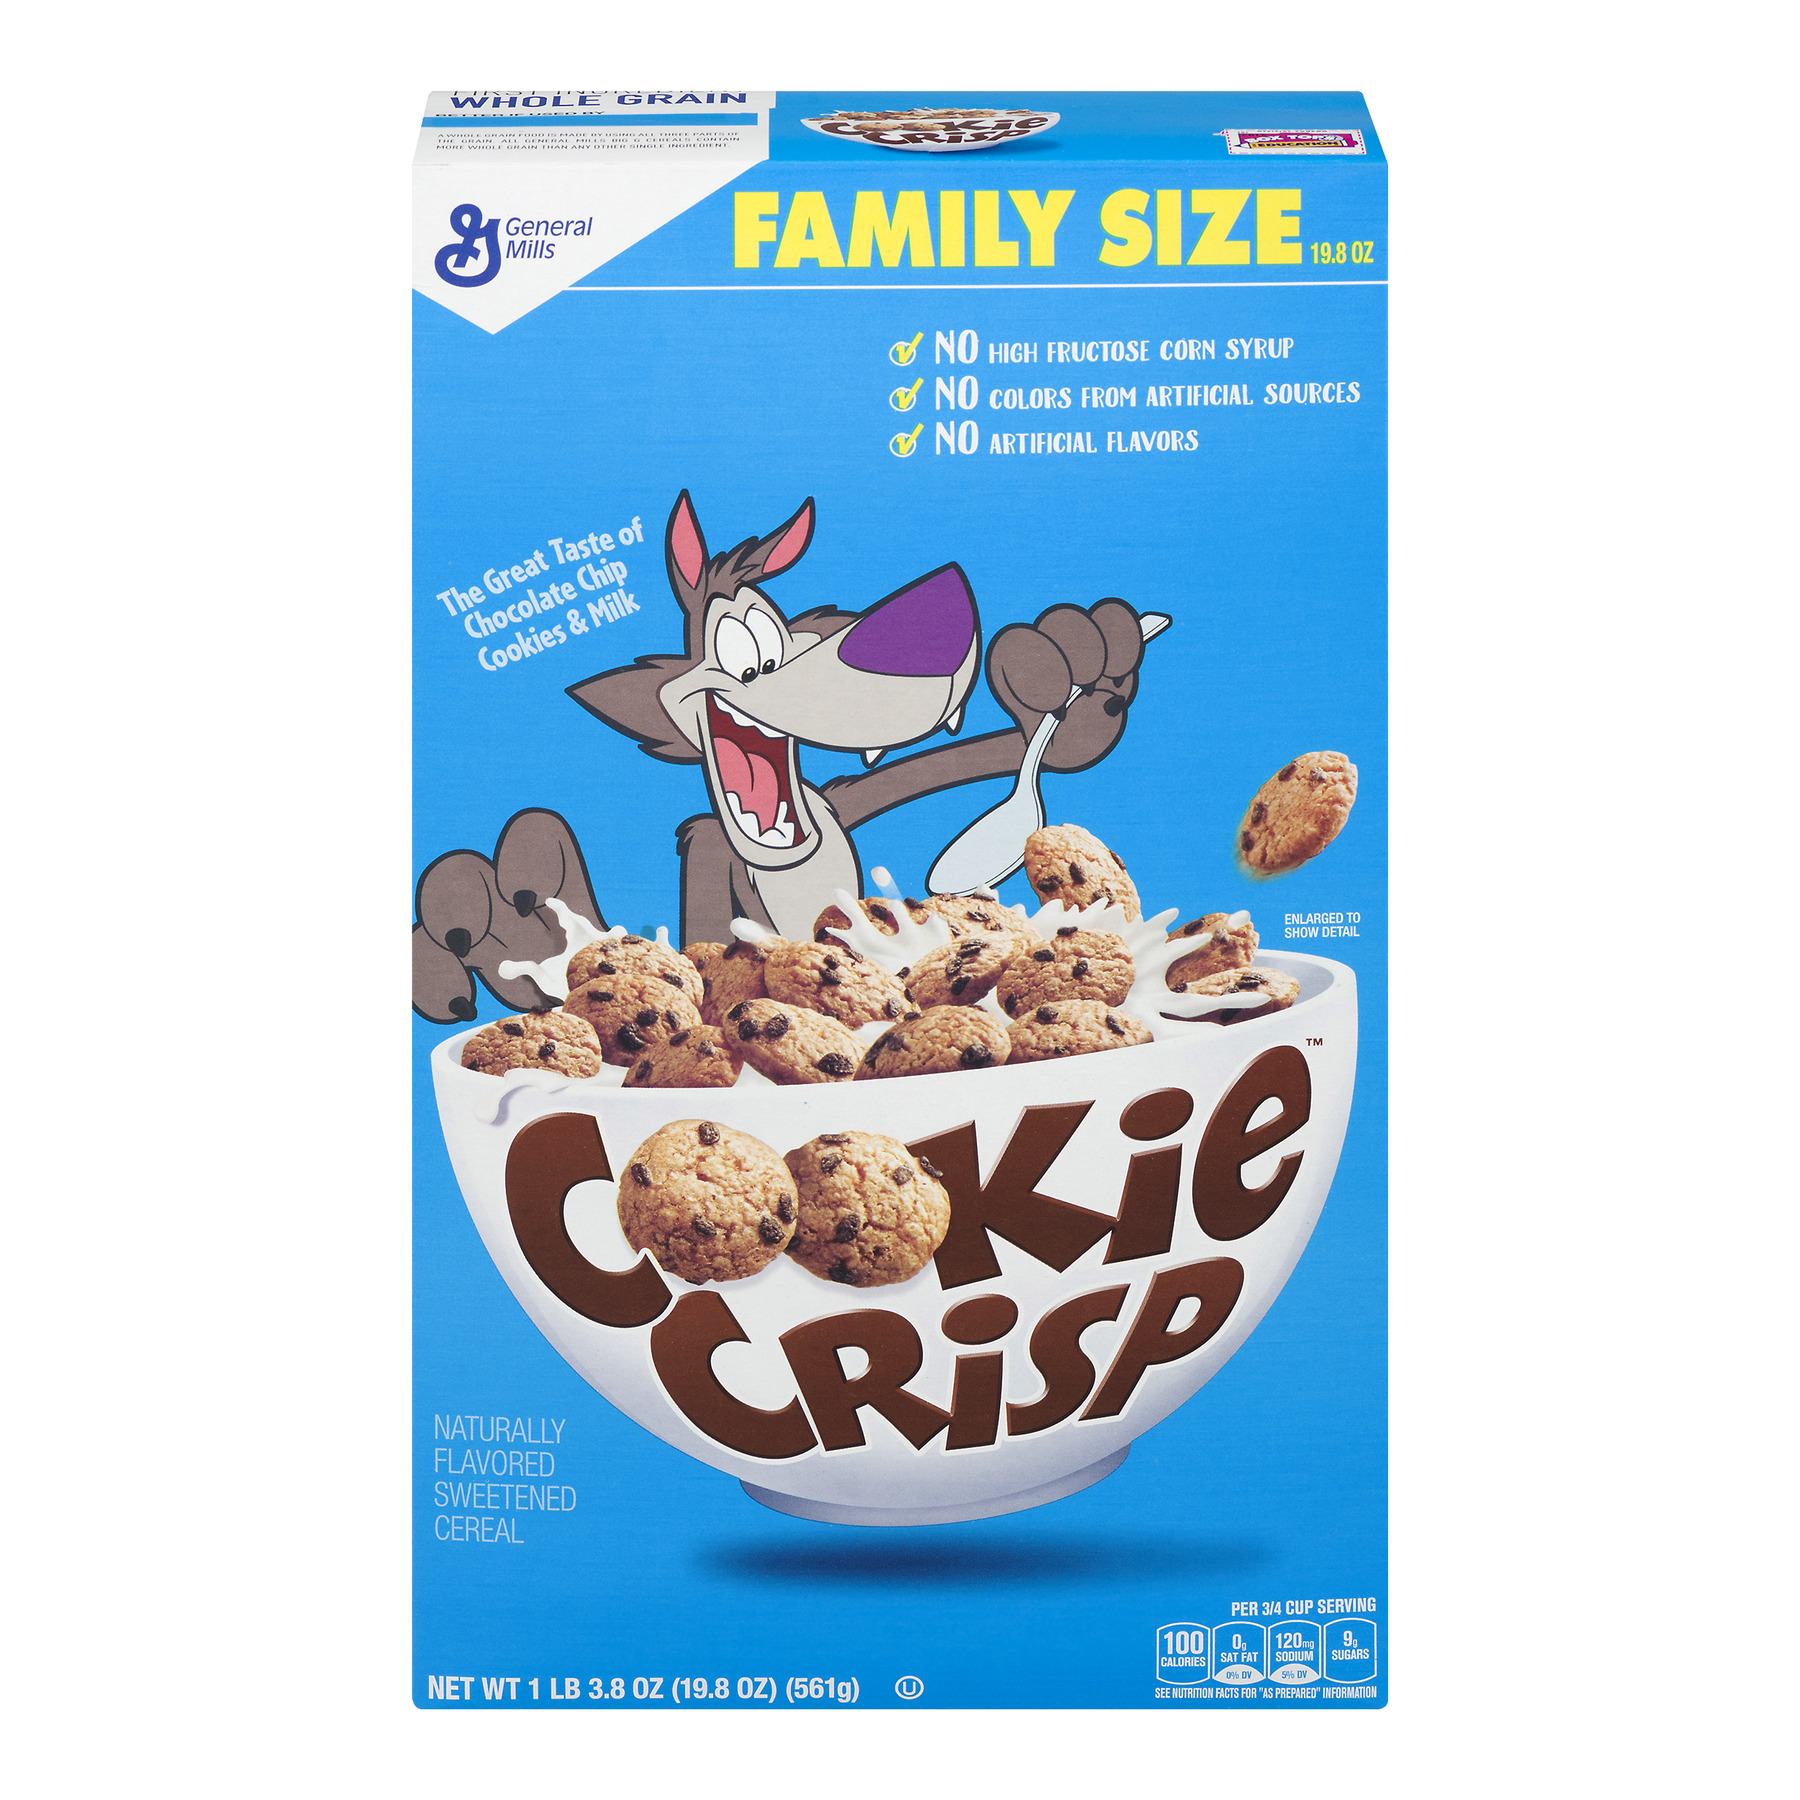 Cookie Crisp™ Chocolate Chip Cookie Flavored Cereal 19.8 oz Box